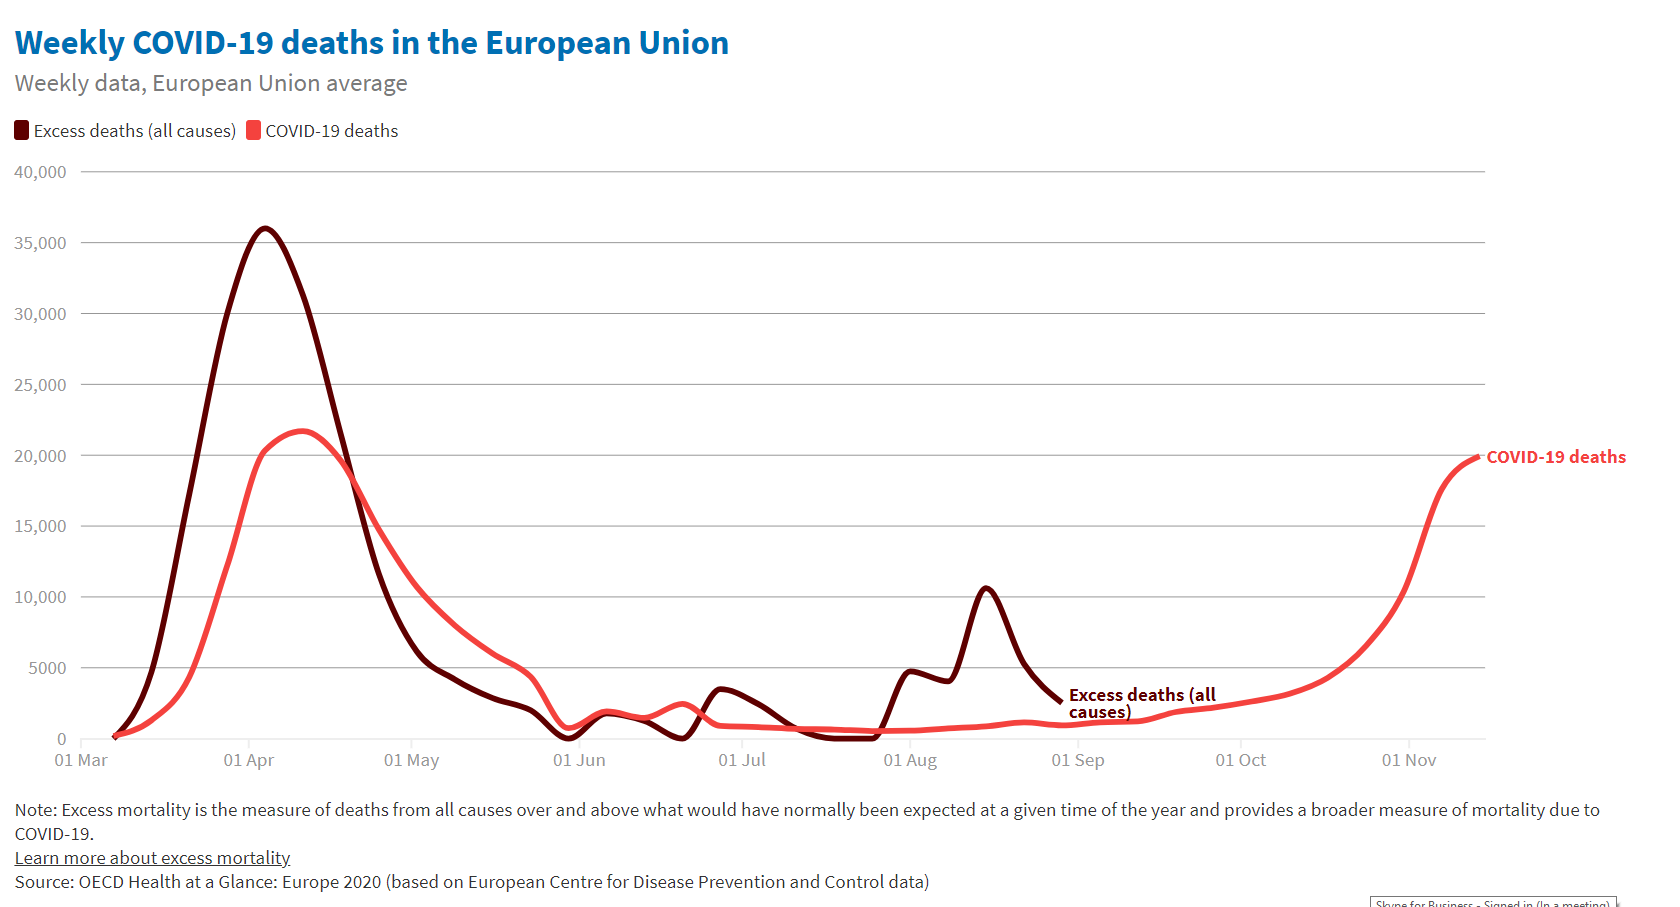 COVID-19 deaths on the rise again in the European Union